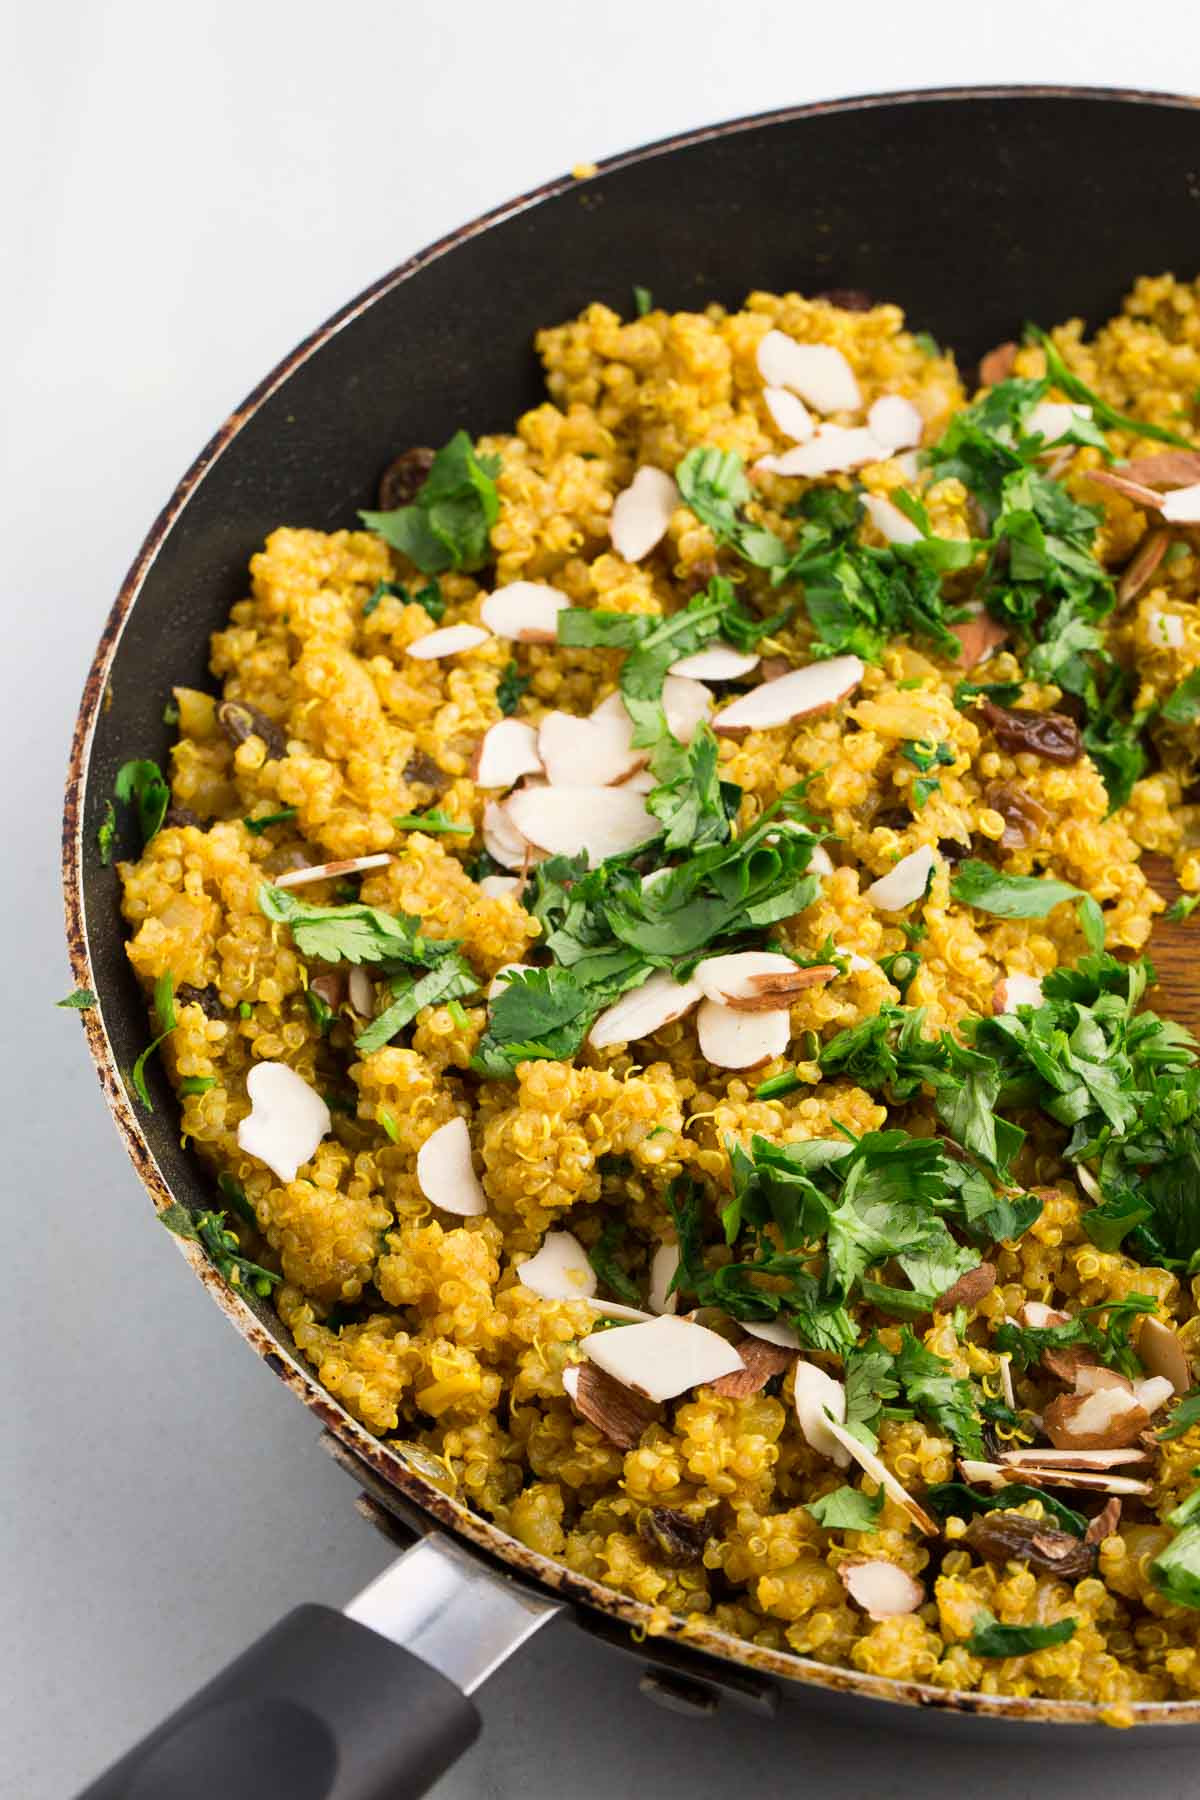 vegan curried quinoa garnished with cilantro and almonds in skillet with white background